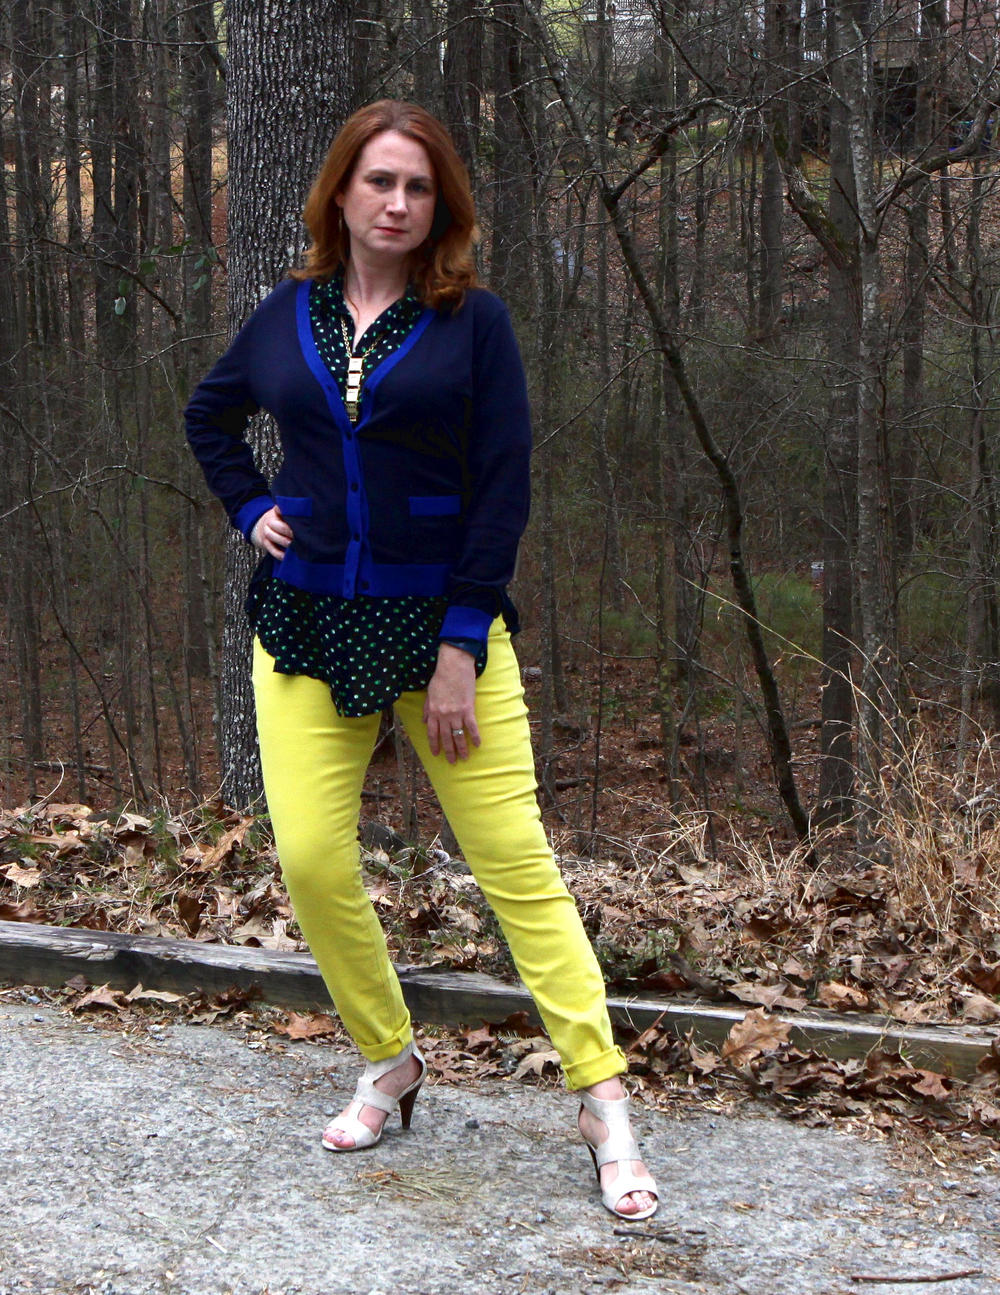 cabi Spring 2016 clothes :   Michelle Cardigan  ,  Martini Top ,  Citron Curvy Skinny  (also available in  regular fit ),  Dolce Charm Earrings ,  and the  Lagoon Necklace  (on backwards). Shoes are the  Unisa Eavvi Sandal  (at DSW).